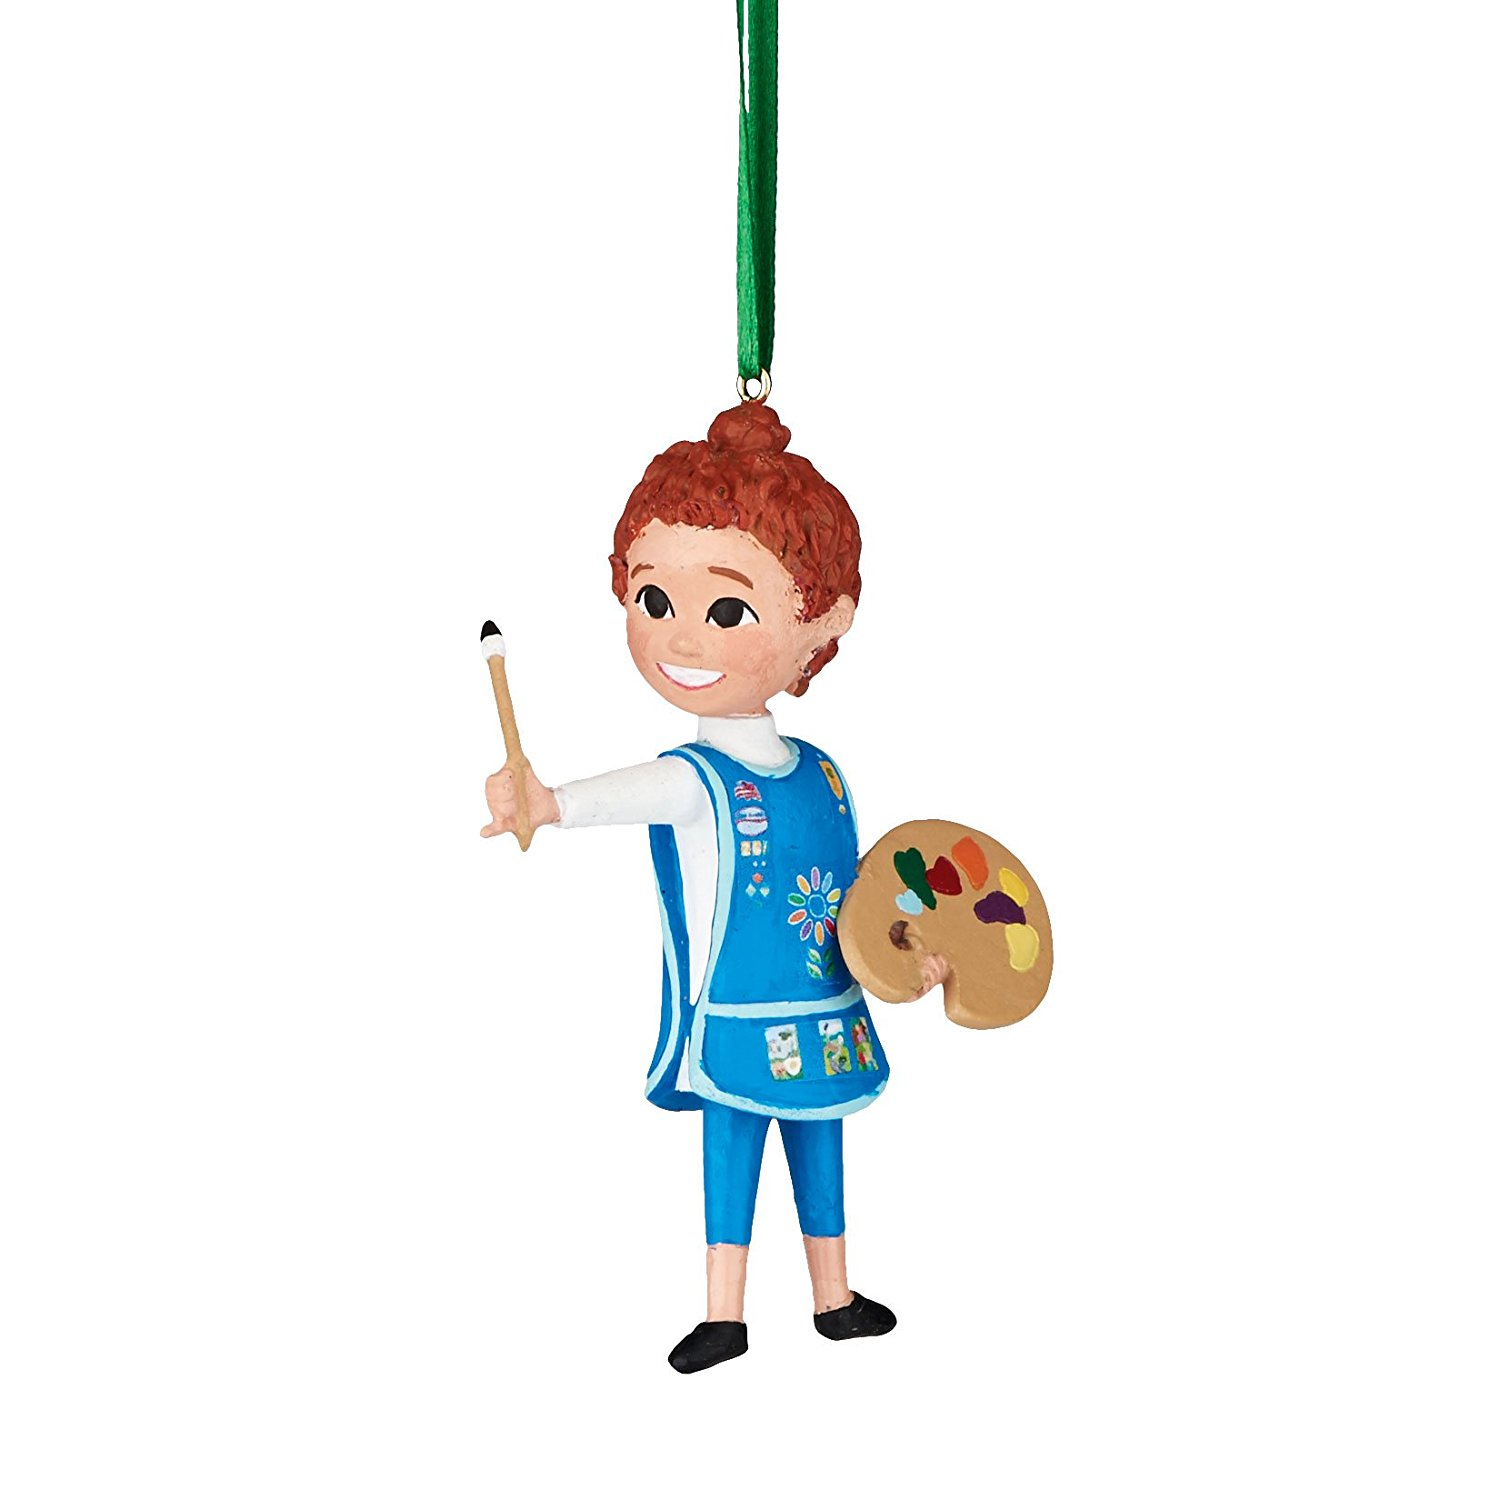 Department 56 Girl Scouts of America Daisy the Artist Hanging Ornament, 3 inch